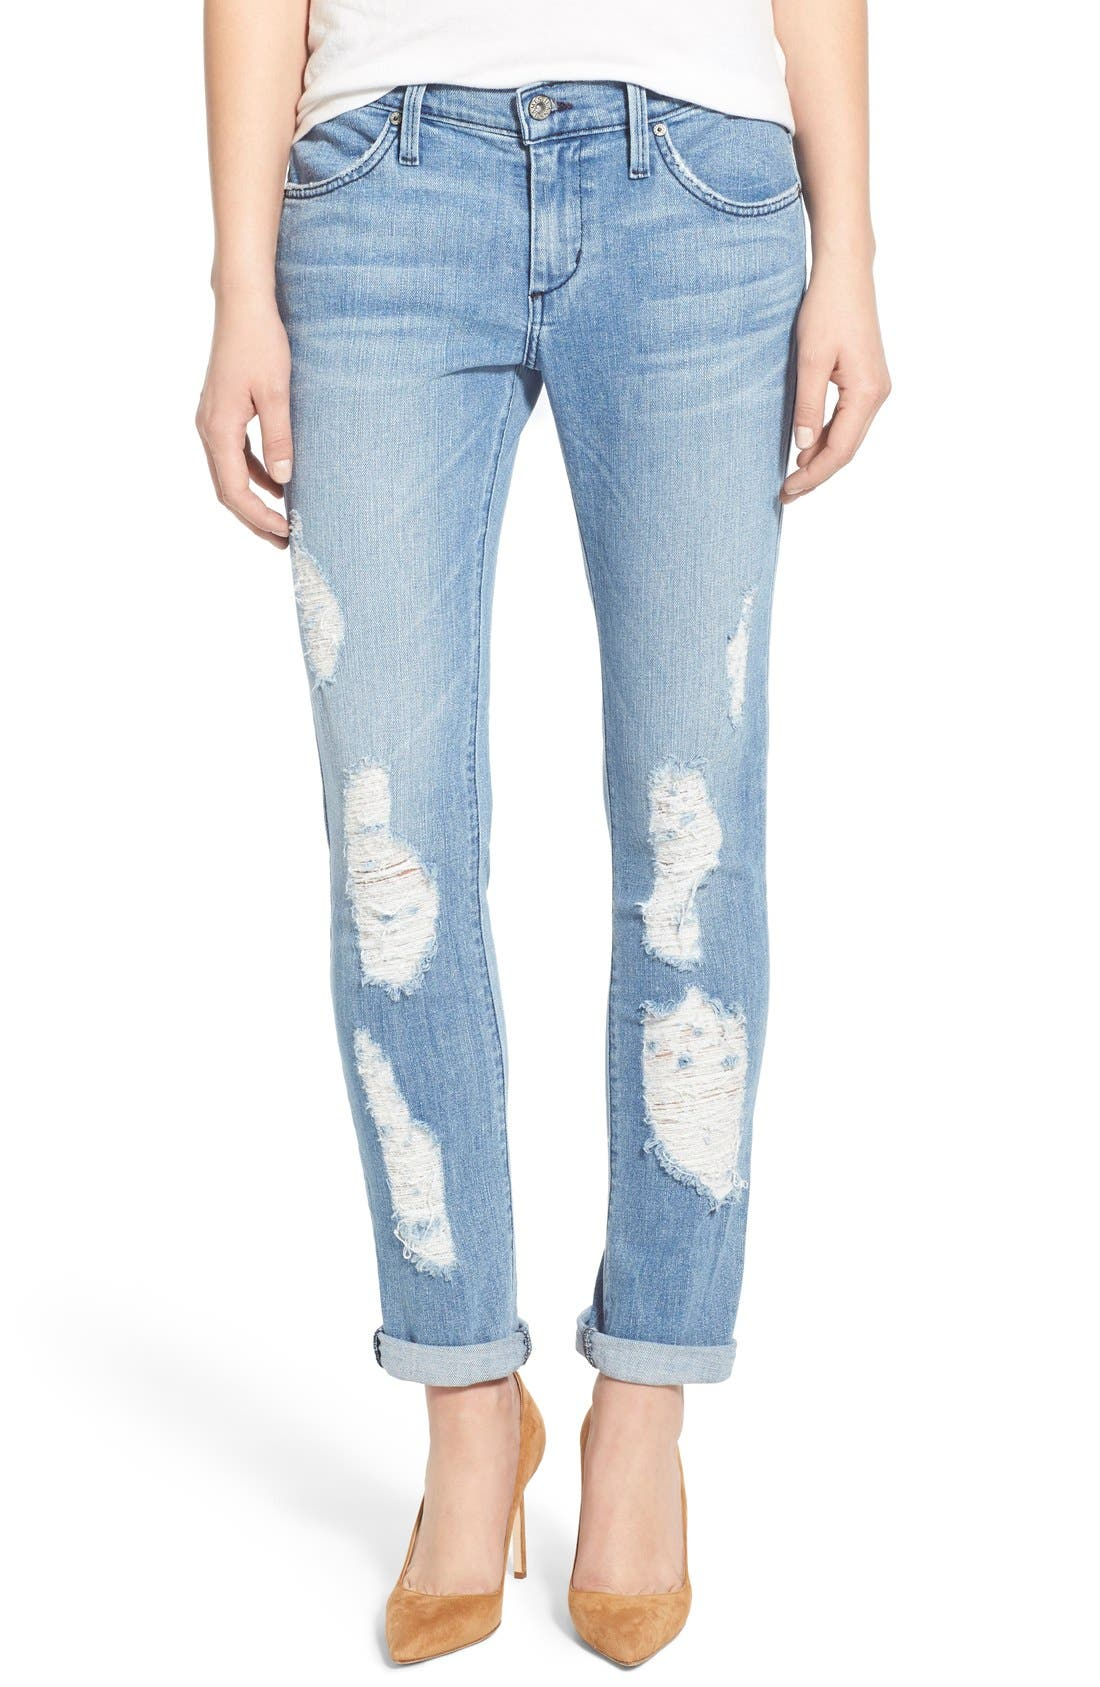 Alternate Image 1 Selected - James Jeans Distressed Slim Boyfriend Jeans (Joy Ride)